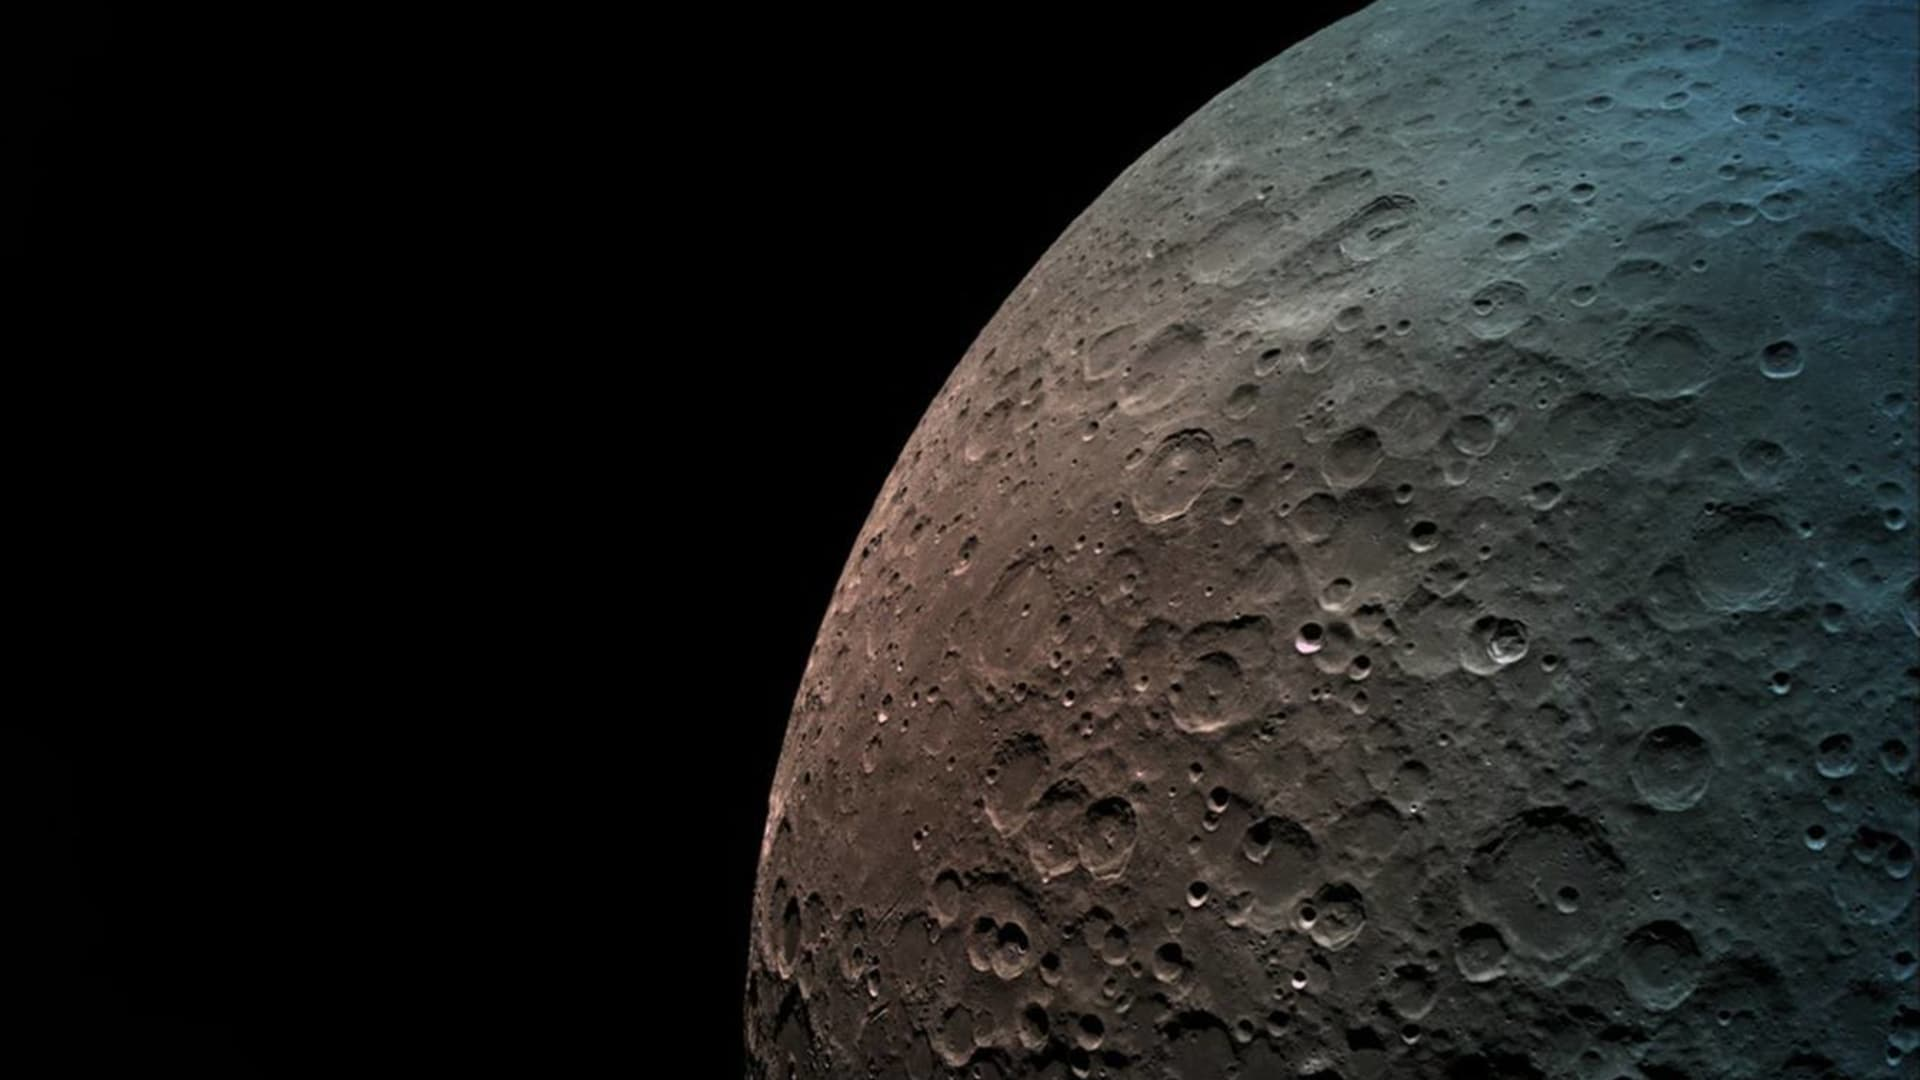 A photo of the moon taken by SpaceIL's Beresheet spacecraft in orbit.